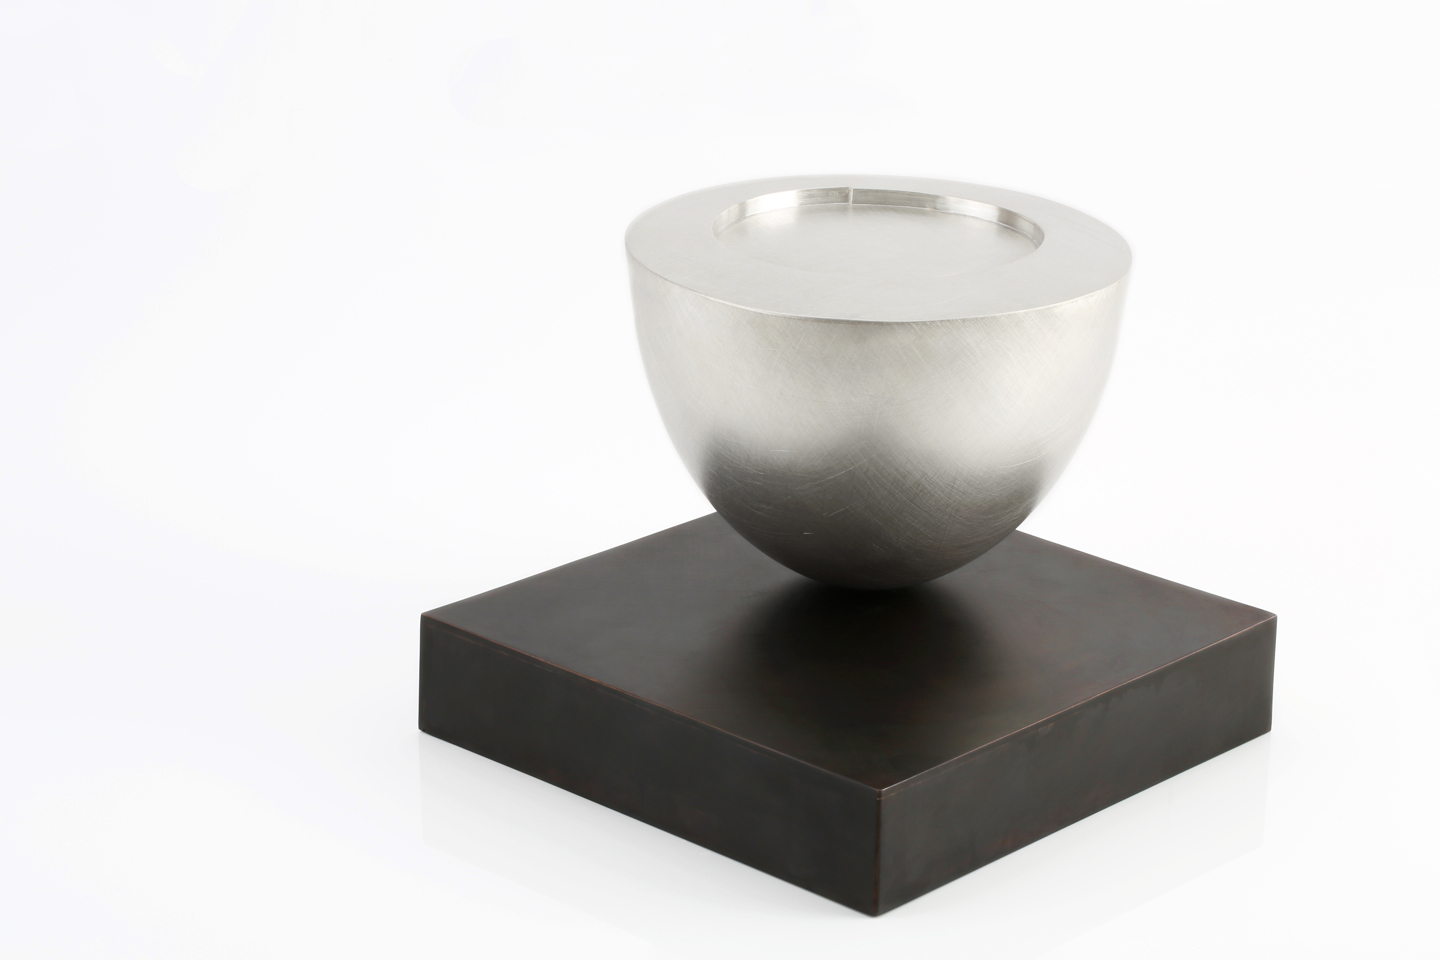 Juliette_Bigley_Balancing_Bowl_1_2_and_3_Patinated_Gilding_Metal_and_Sterling_Silver_2016_8.JPG